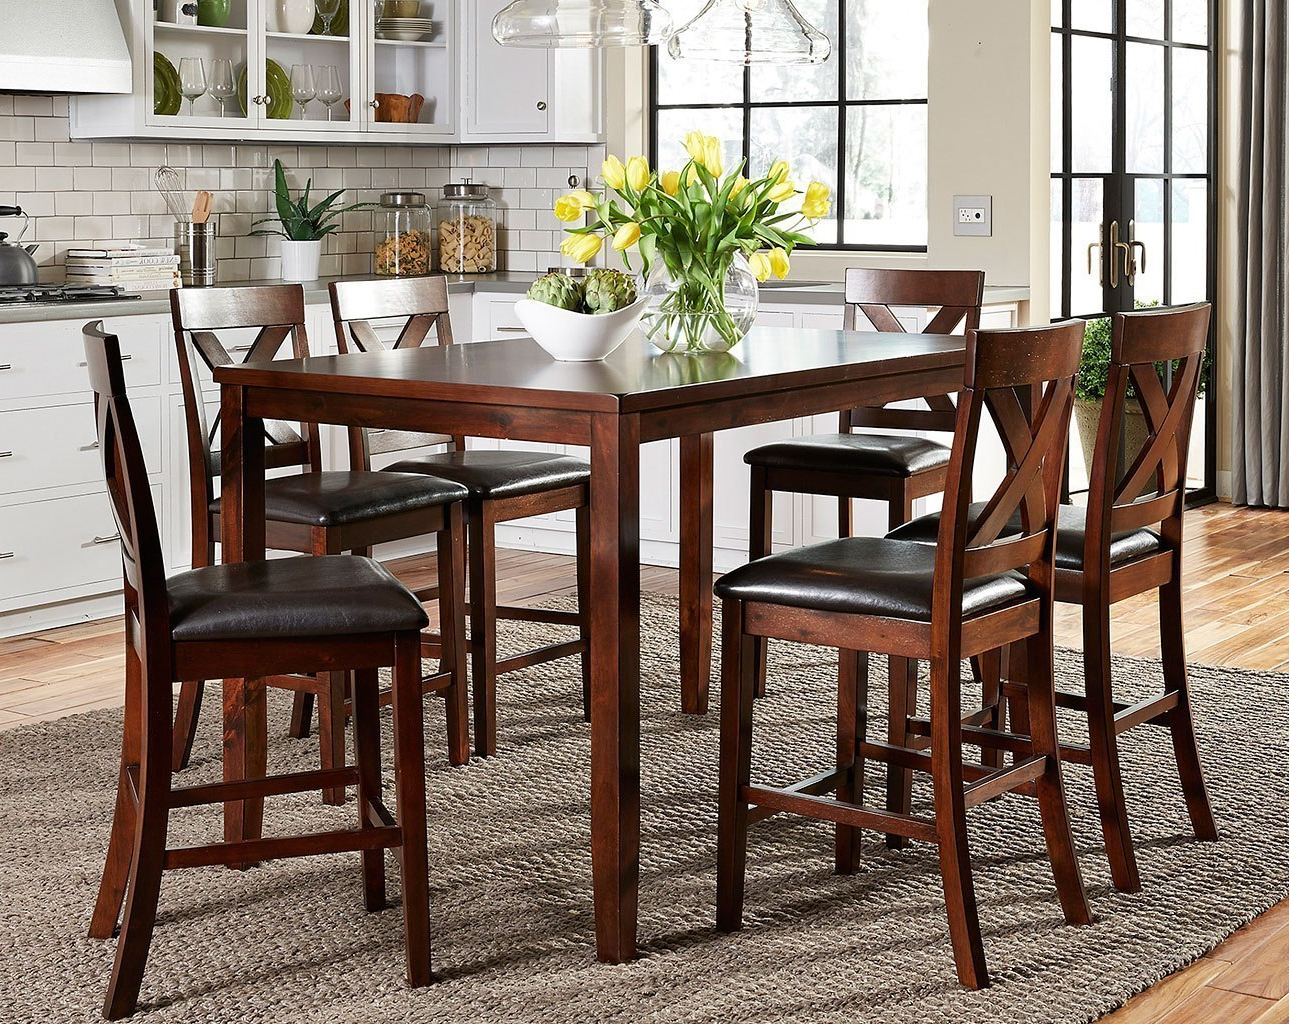 Thornton 7 Piece Counter Height Dining Set For 2019 Debby Small Space 3 Piece Dining Sets (View 19 of 25)